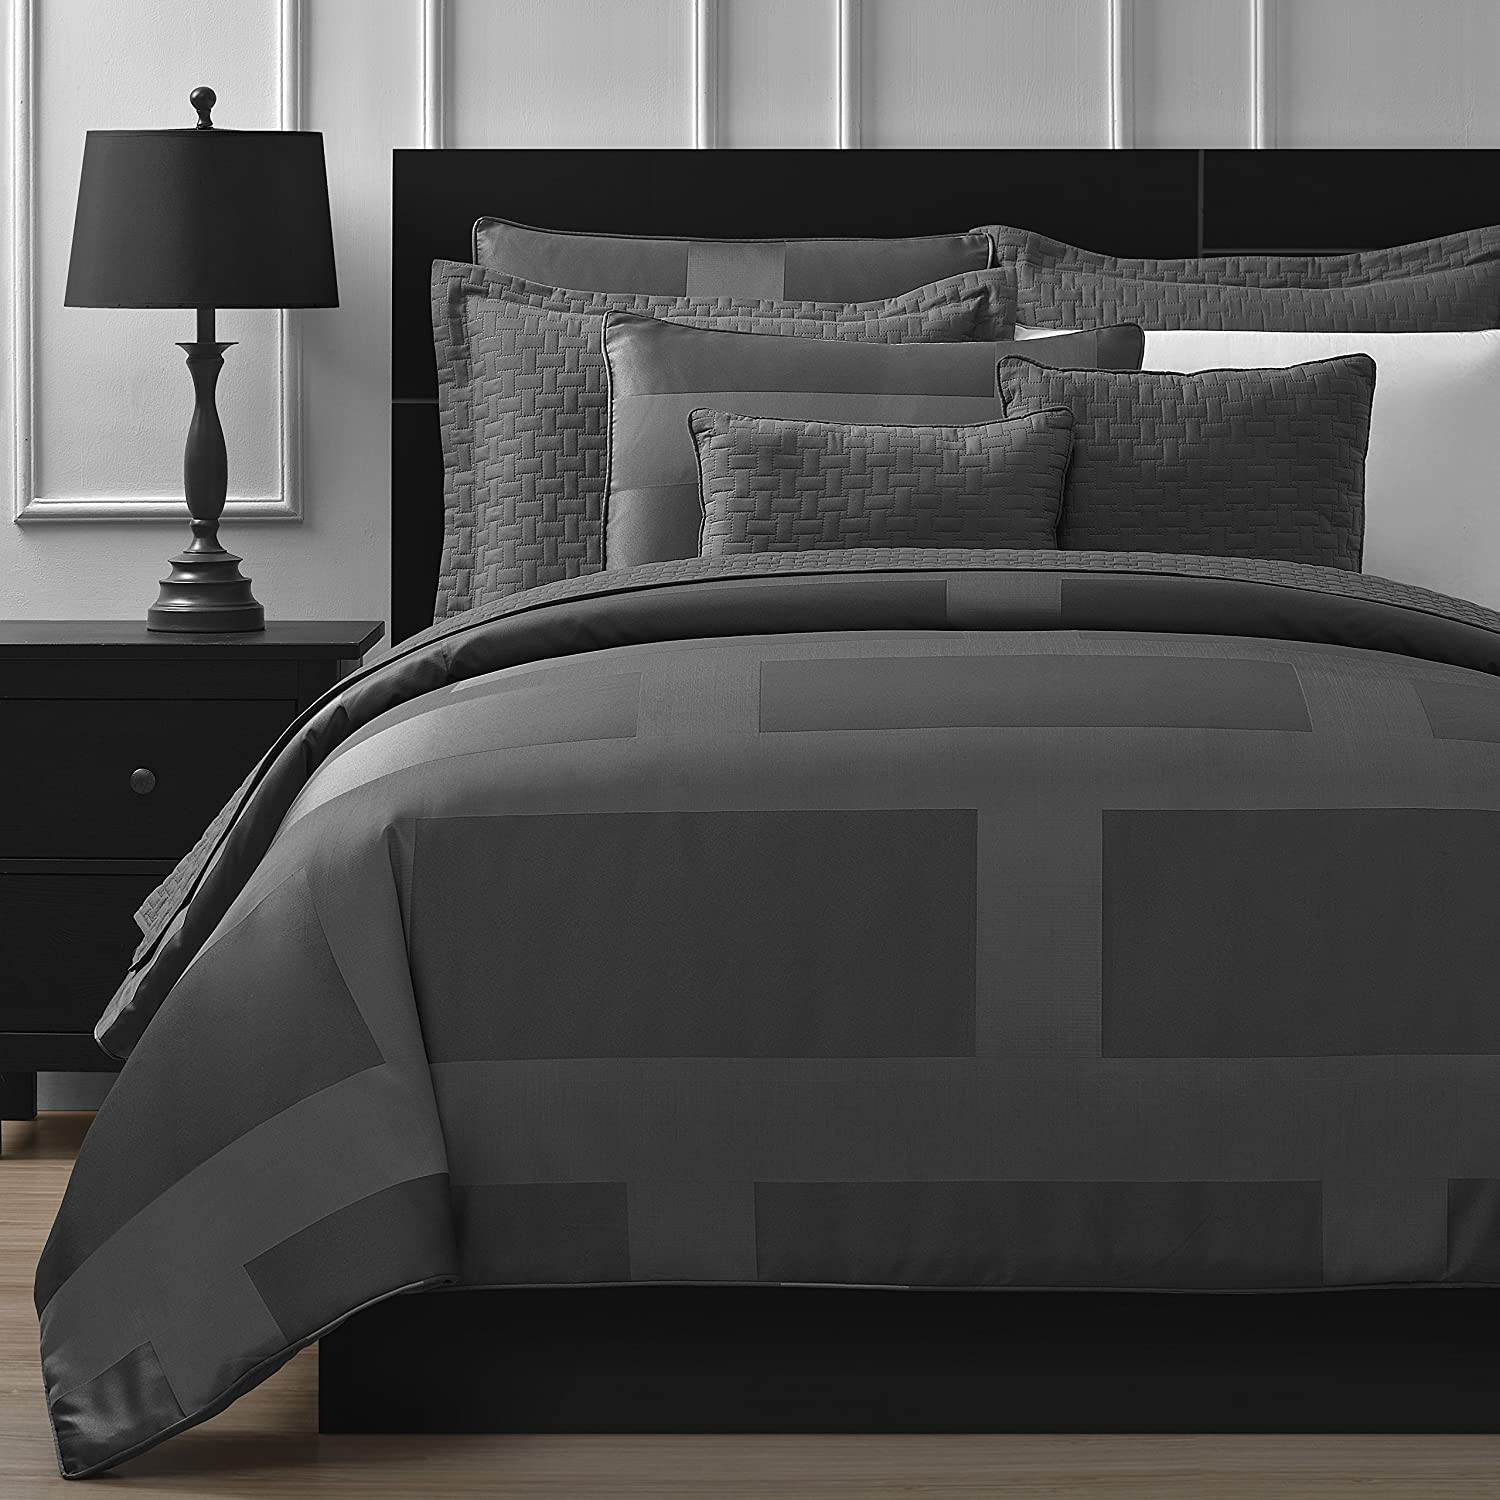 Comfy Bedding Frame Jacquard Microfiber King 8-piece Comforter Set, Gray